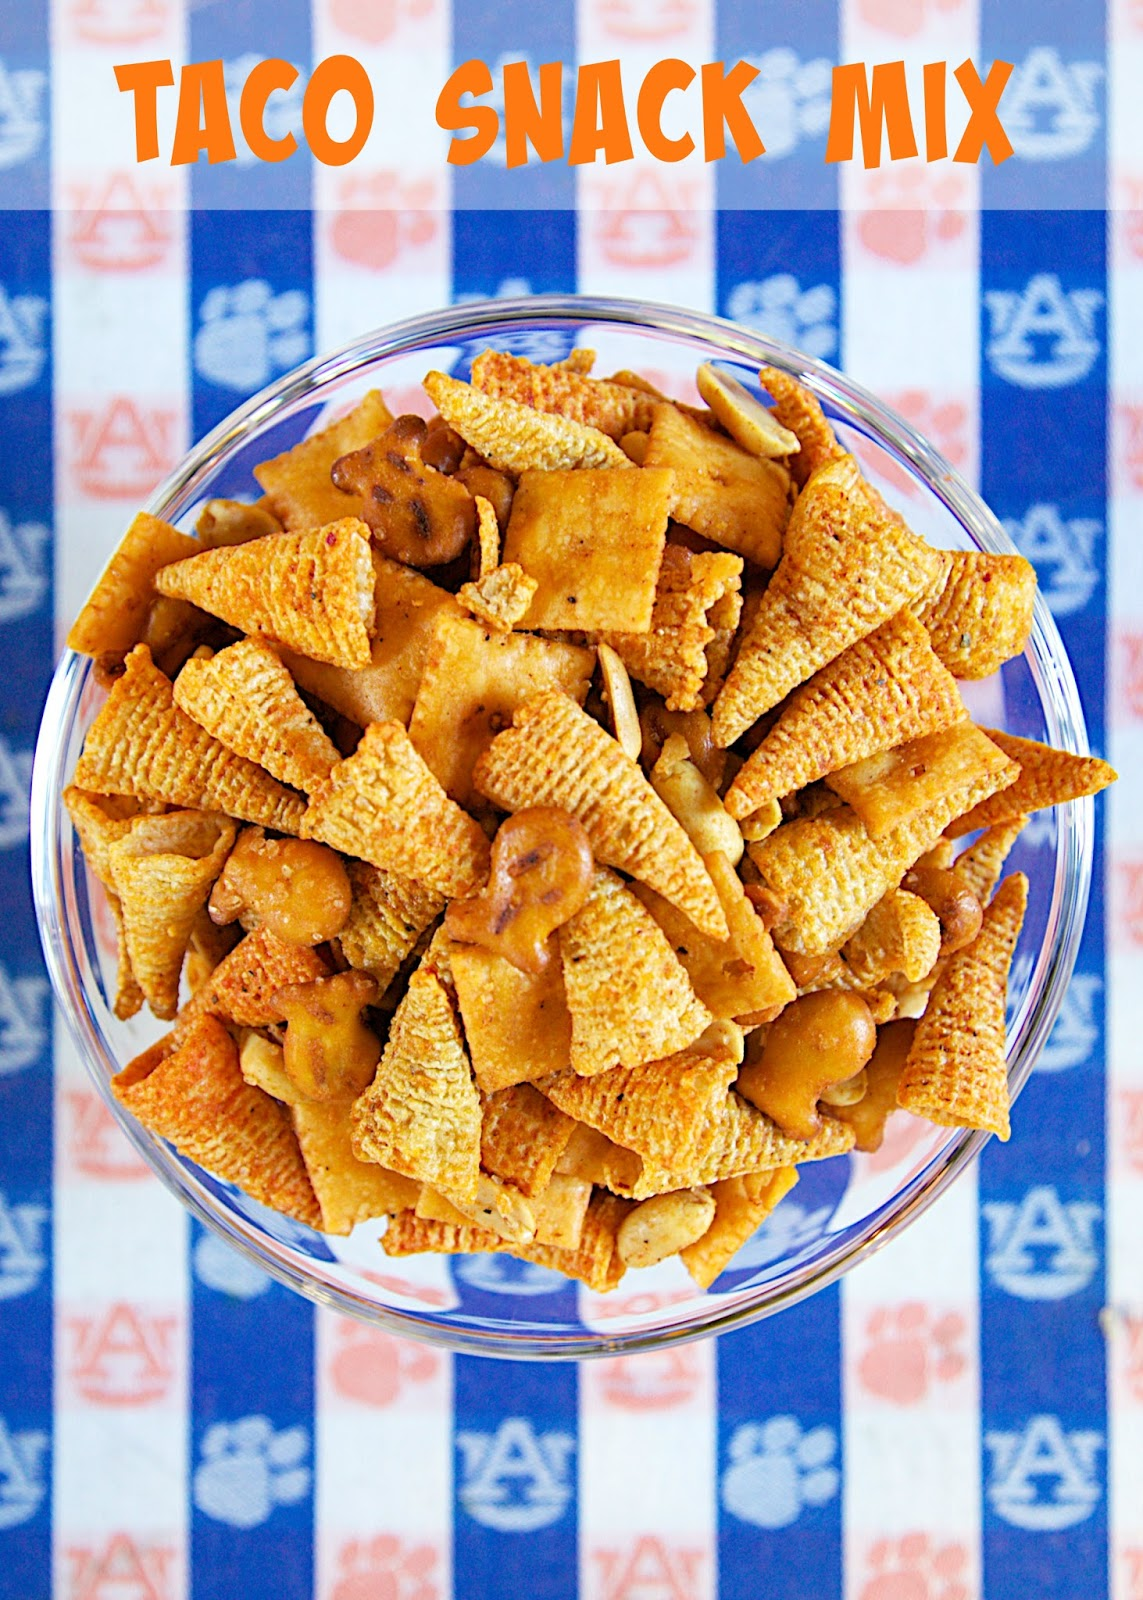 Taco Snack Mix - so addictive!! Bugles, pretzels, cheez-its, peanuts tossed in taco seasoning and oil. Great for snacking on during parties and tailgates!! Everyone RAVES about this yummy snack mix recipe!